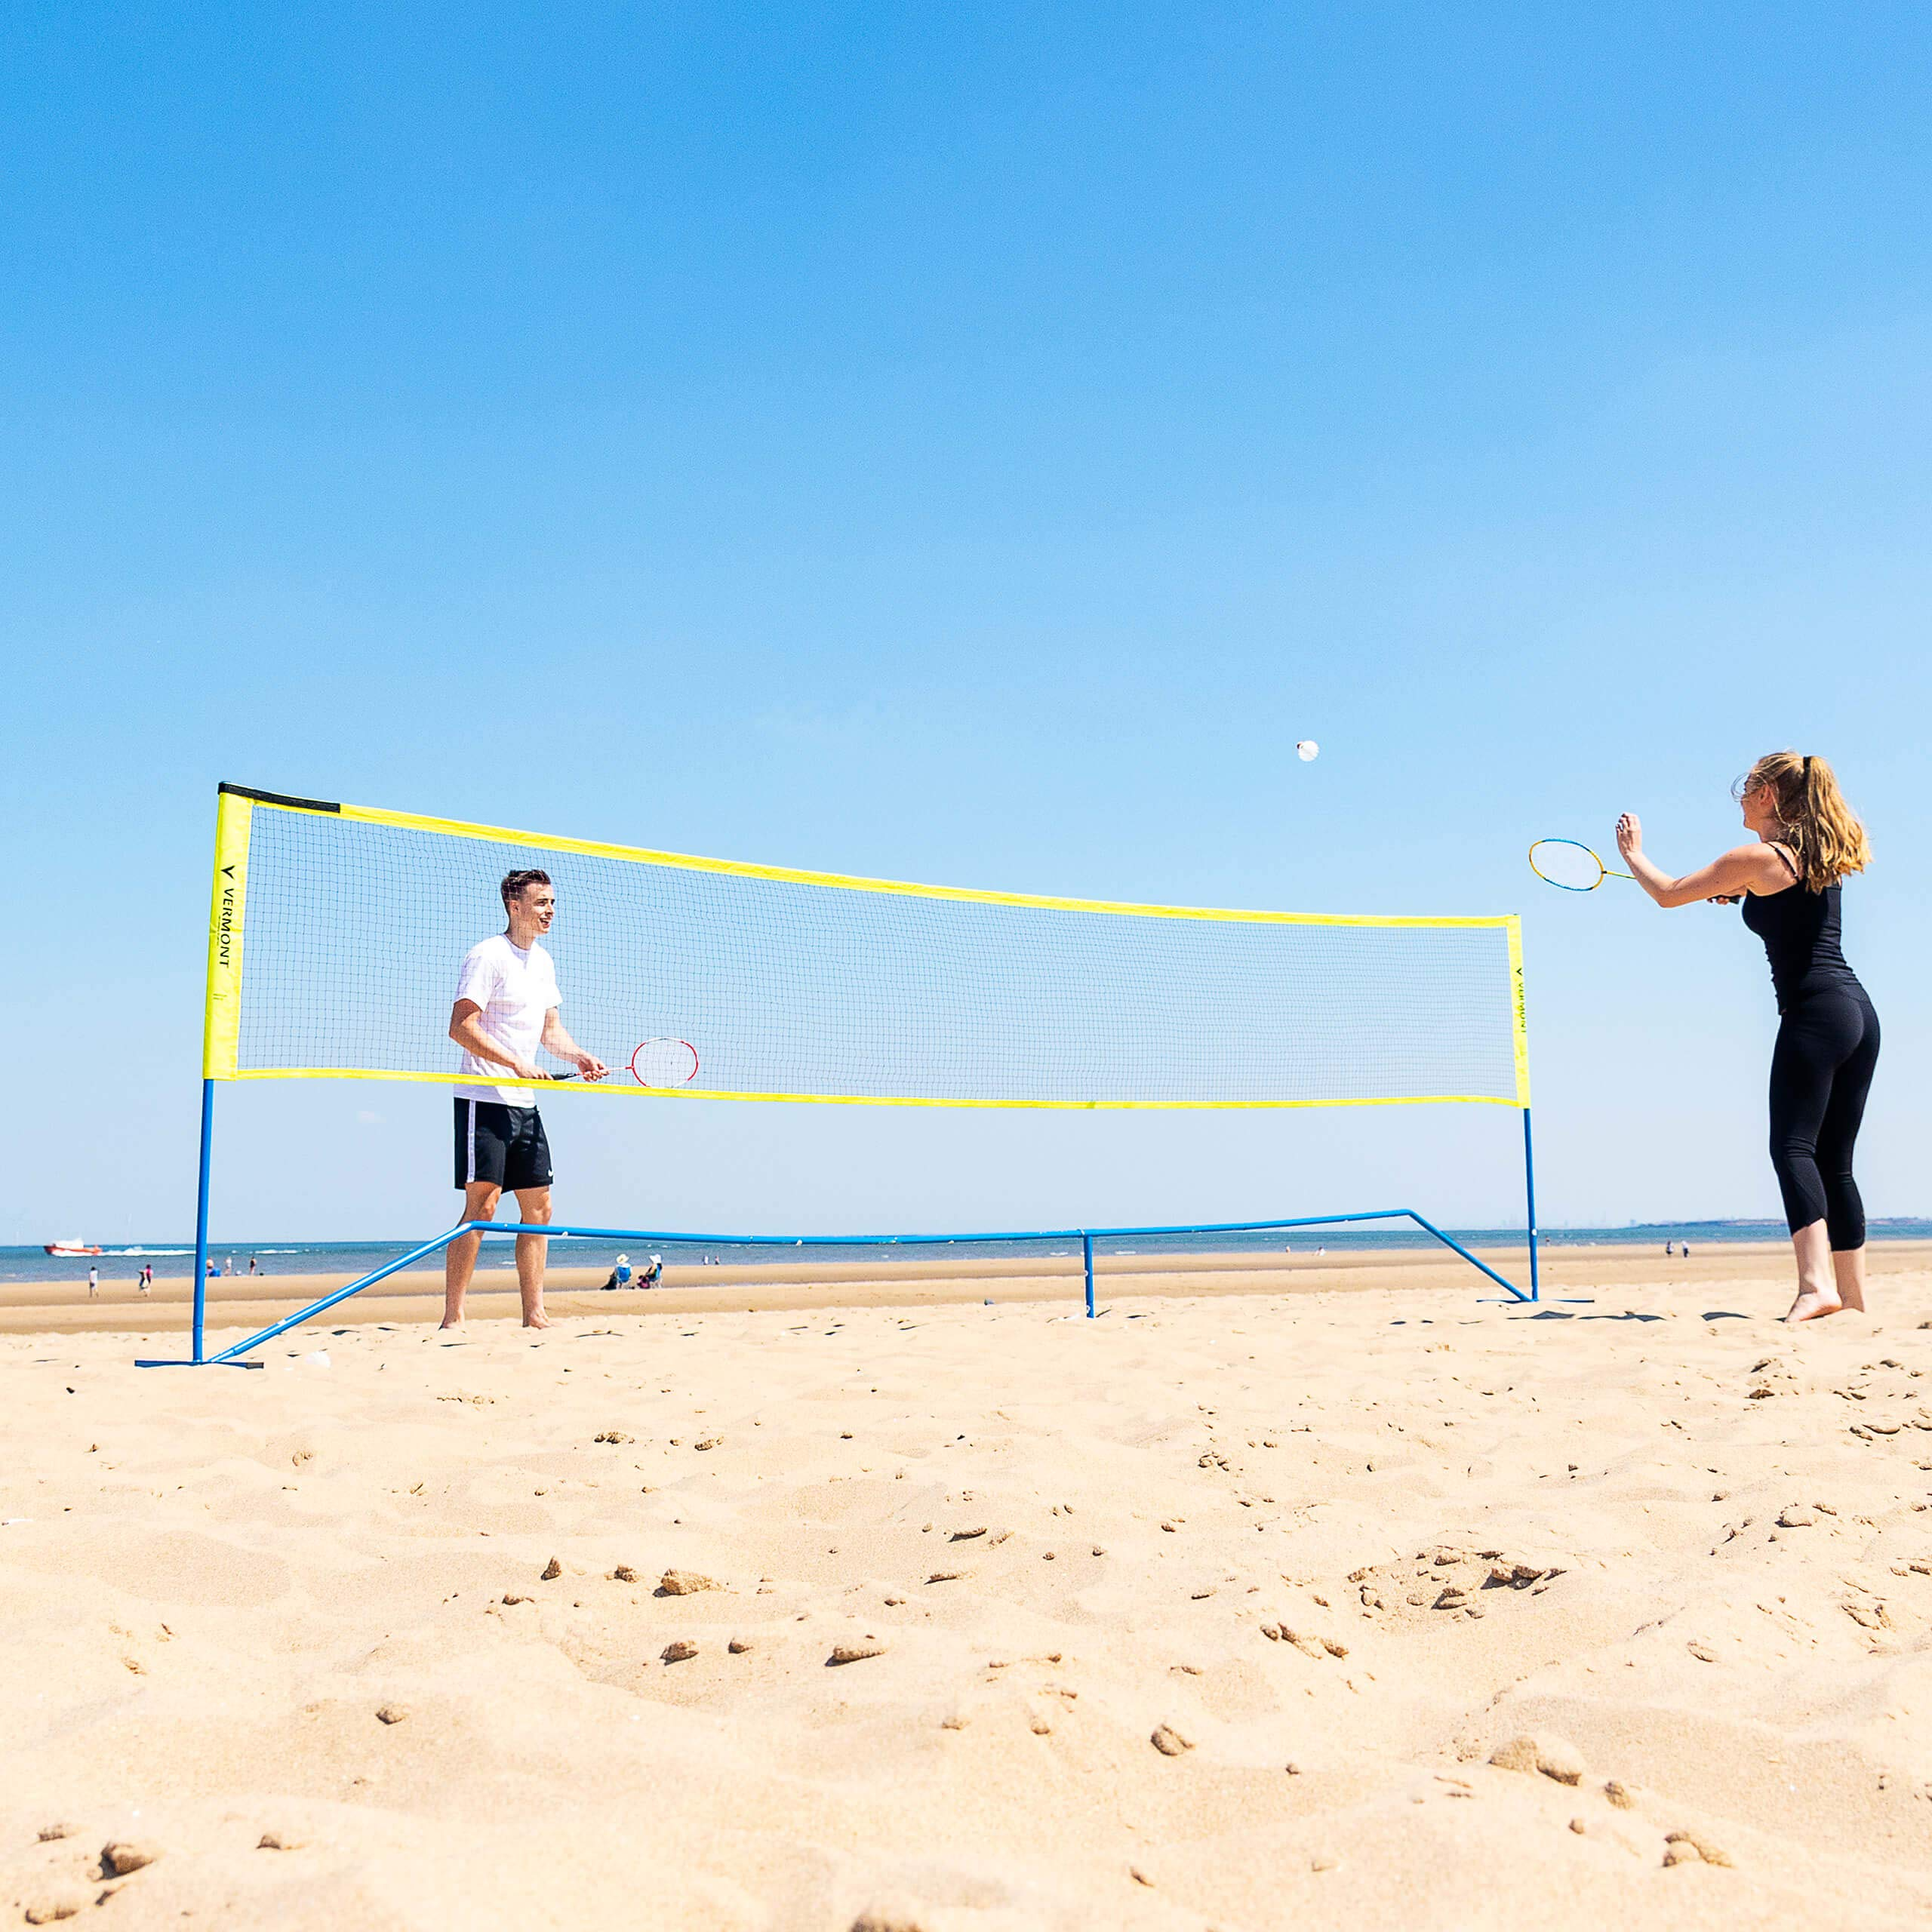 ProCourt Vermont Combi Net | Perfect for Tennis, Badminton, Pickleball, Volleyball & Soccer Tennis | Super Quick Assembly with Steel Poles | Use Indoors, Outdoors, On The Beach Or The Backyard! by ProCourt (Image #3)